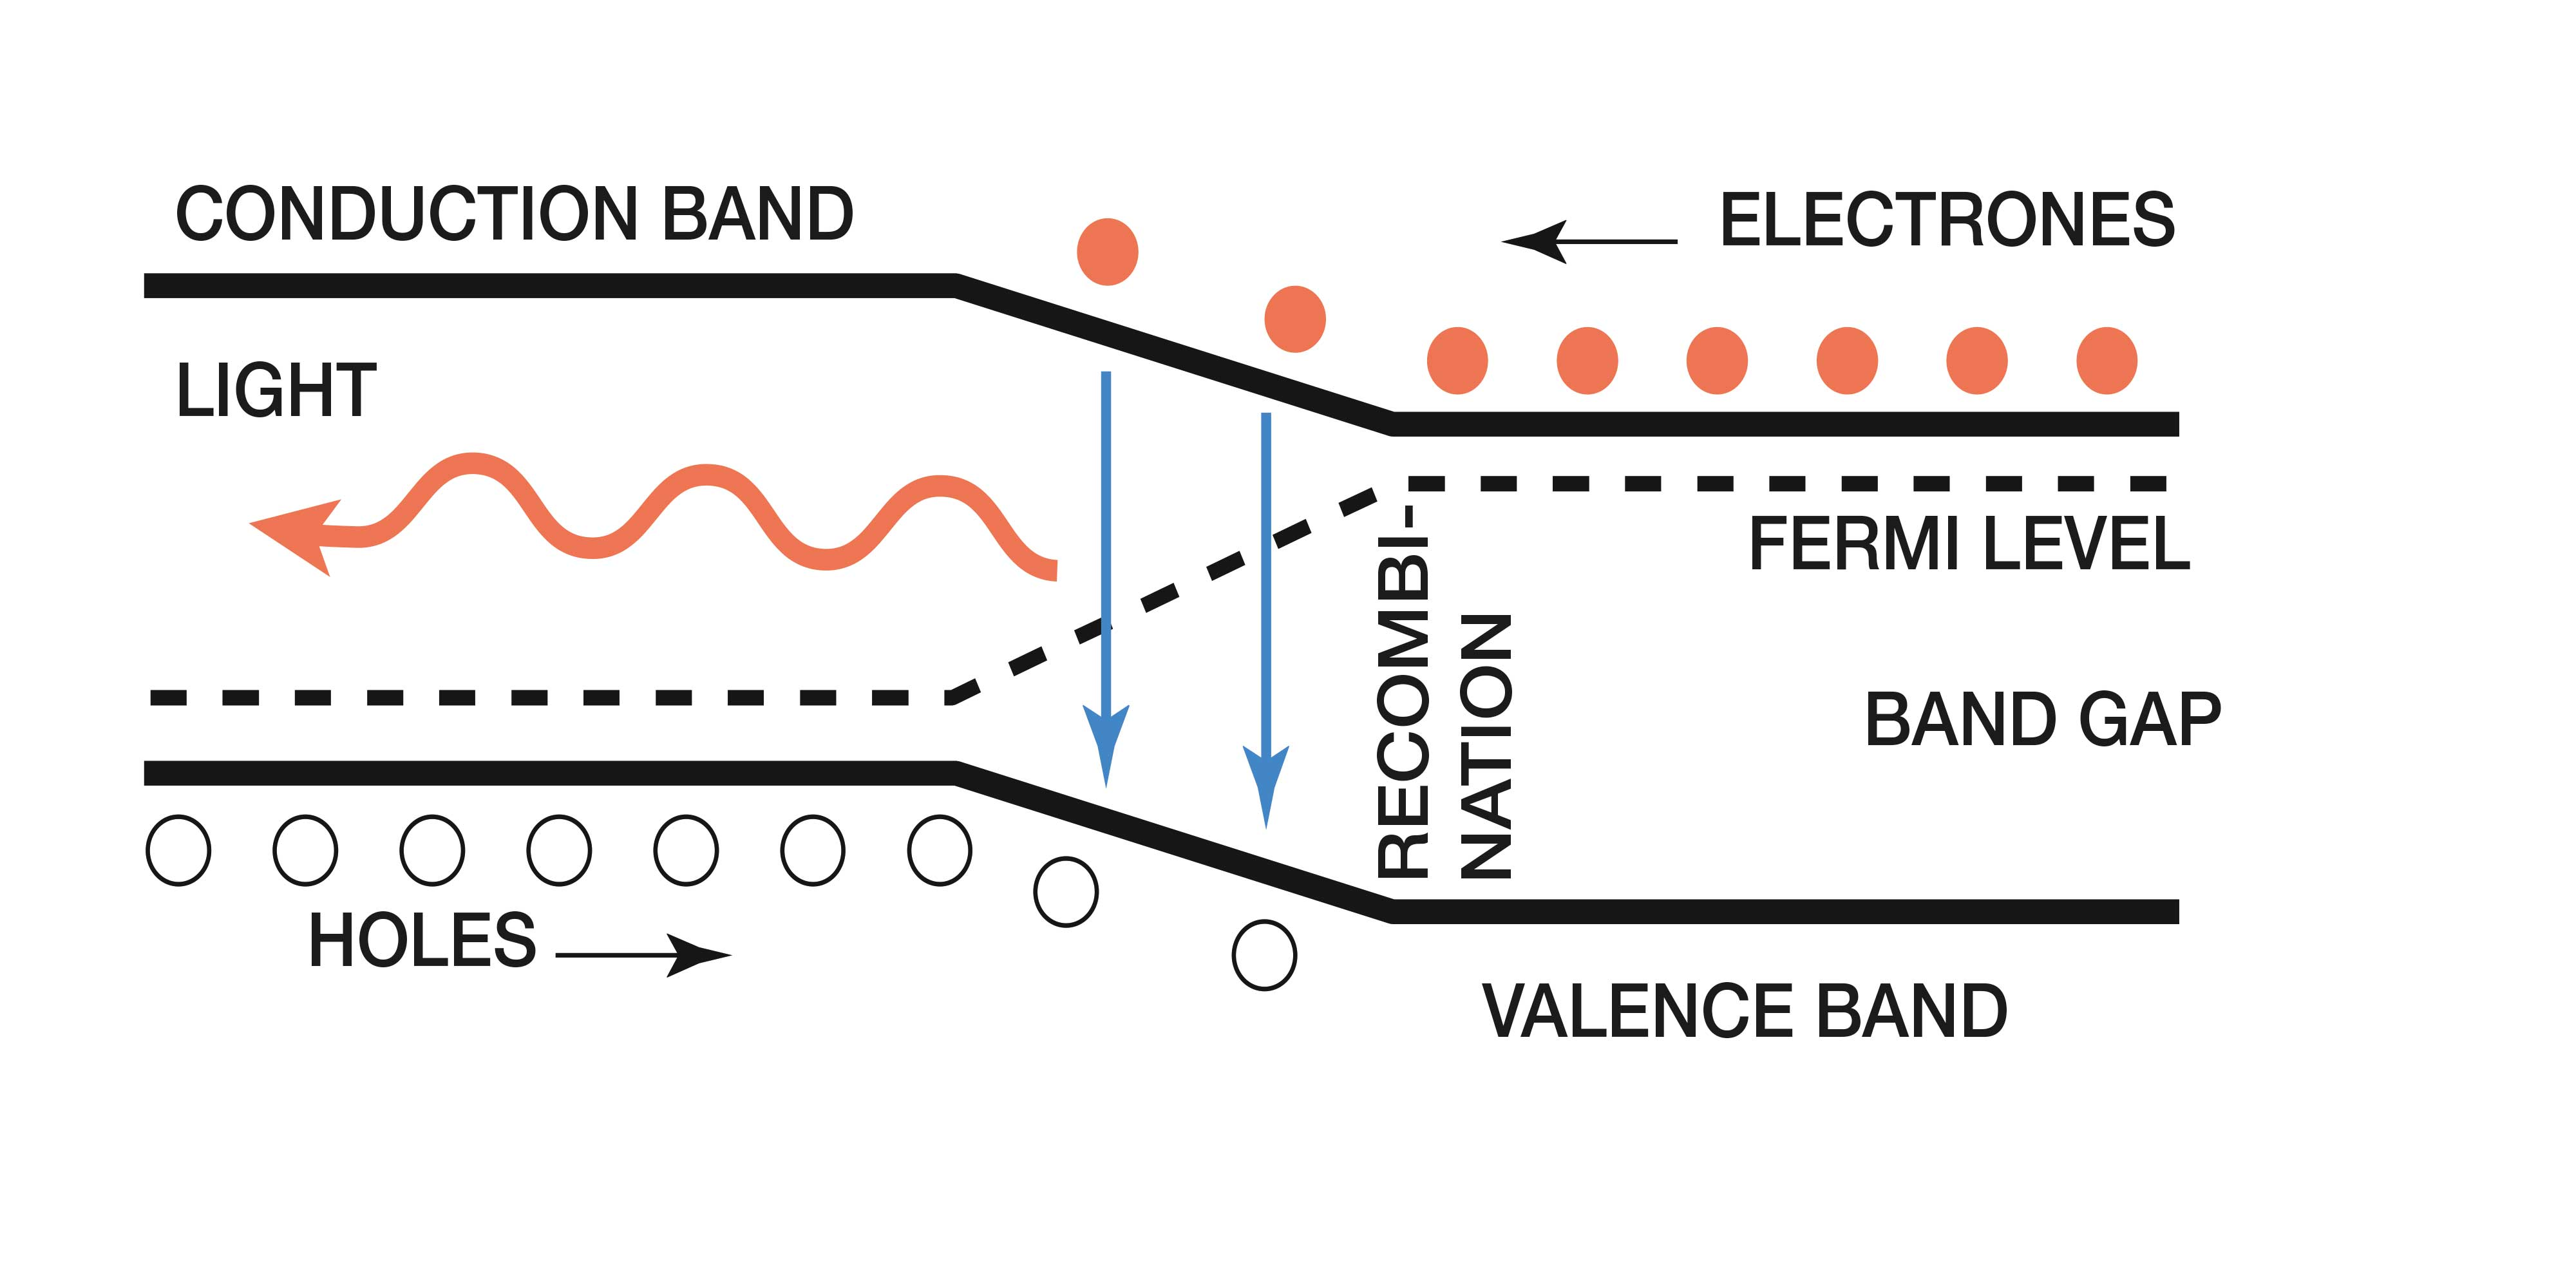 The energy diagram shows how the electrons in the n-doped material occupy the upper level (conduction band) and the holes in the p-doped material occupy the lower level (valence band). When a p- and n-type semiconductor are joined together, electrons flow from the n-doped material towards the p-doped material leaving behind fixed ionized positive charges, and holes flow from the p-doped material leaving behind fixed ionized negative charges.  . This results in a built-in electrical field that eventually prevents further flow of carriers across the junction. When an external electric field is applied by, say, connecting the LED to a battery with the anode on the p-side and the cathode on the n-side (i.e. forward biased), the thermal equilibrium is disturbed and the overall field across the junction lowered. Electrons from the n-doped material and holes from the p-doped material are then injected towards the junction where they can recombine and emit their excess energy in the form of photons.